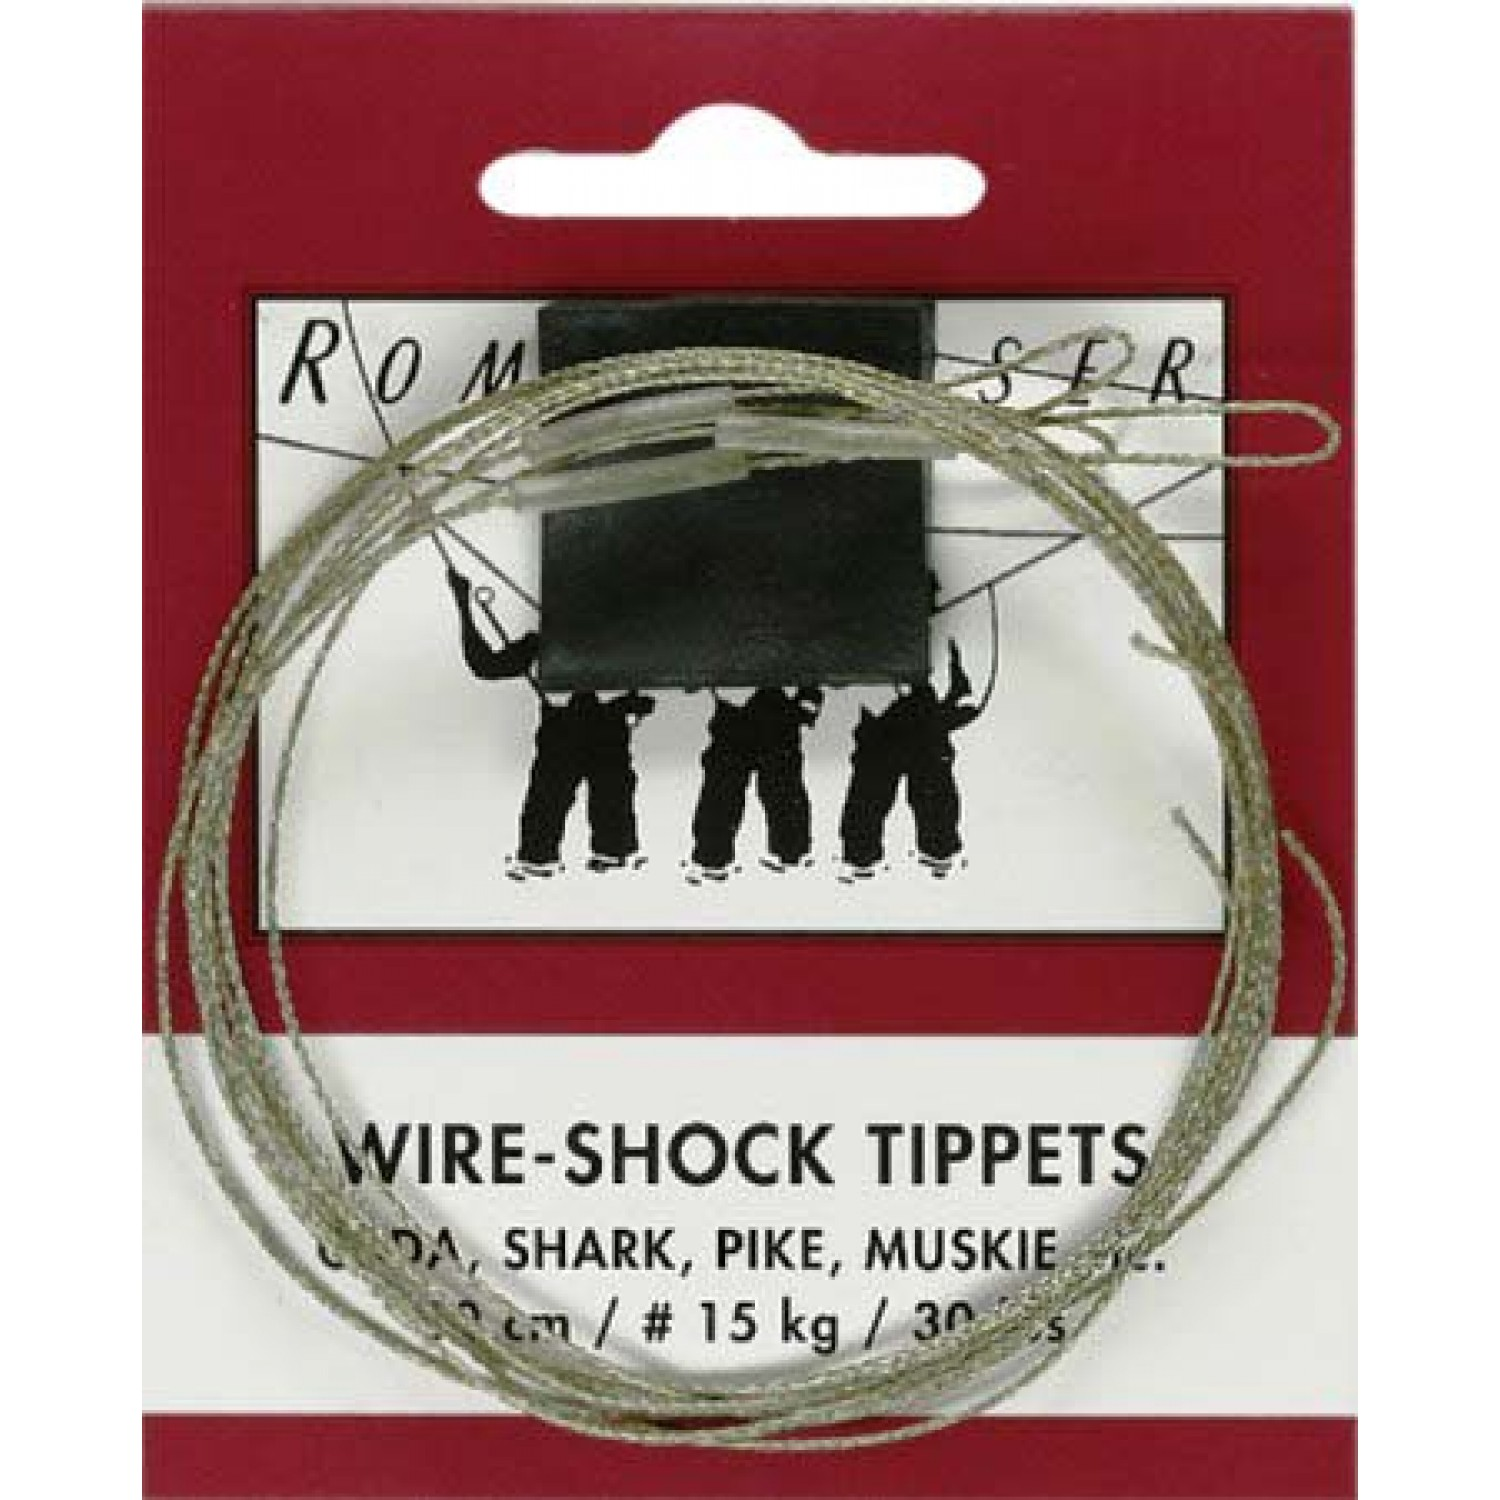 RM - Wire Shock Tippets